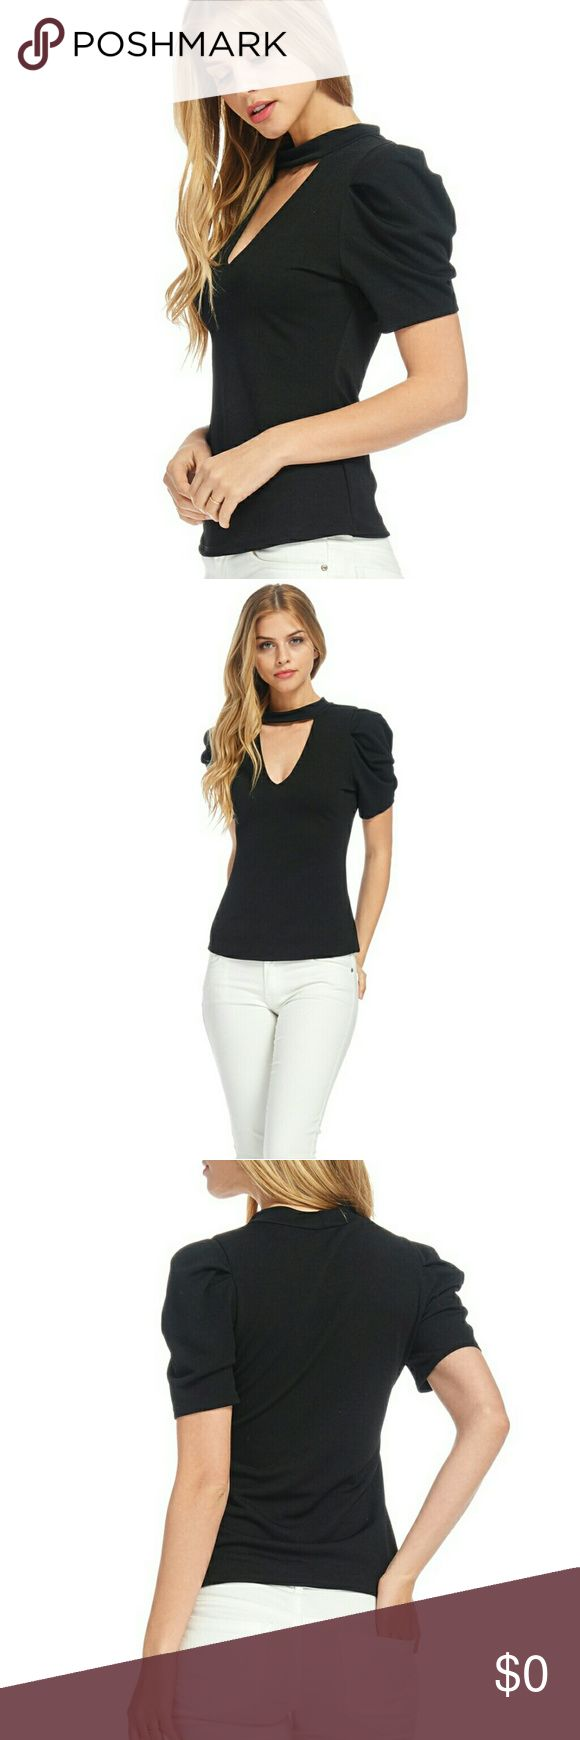 * NEW* Puffed Sleeve Choker top Black colored open neck choker top, puffed sleeves, textured polyester spandex material,very figure flattering and stretchy. Runs true to size. Tops Blouses